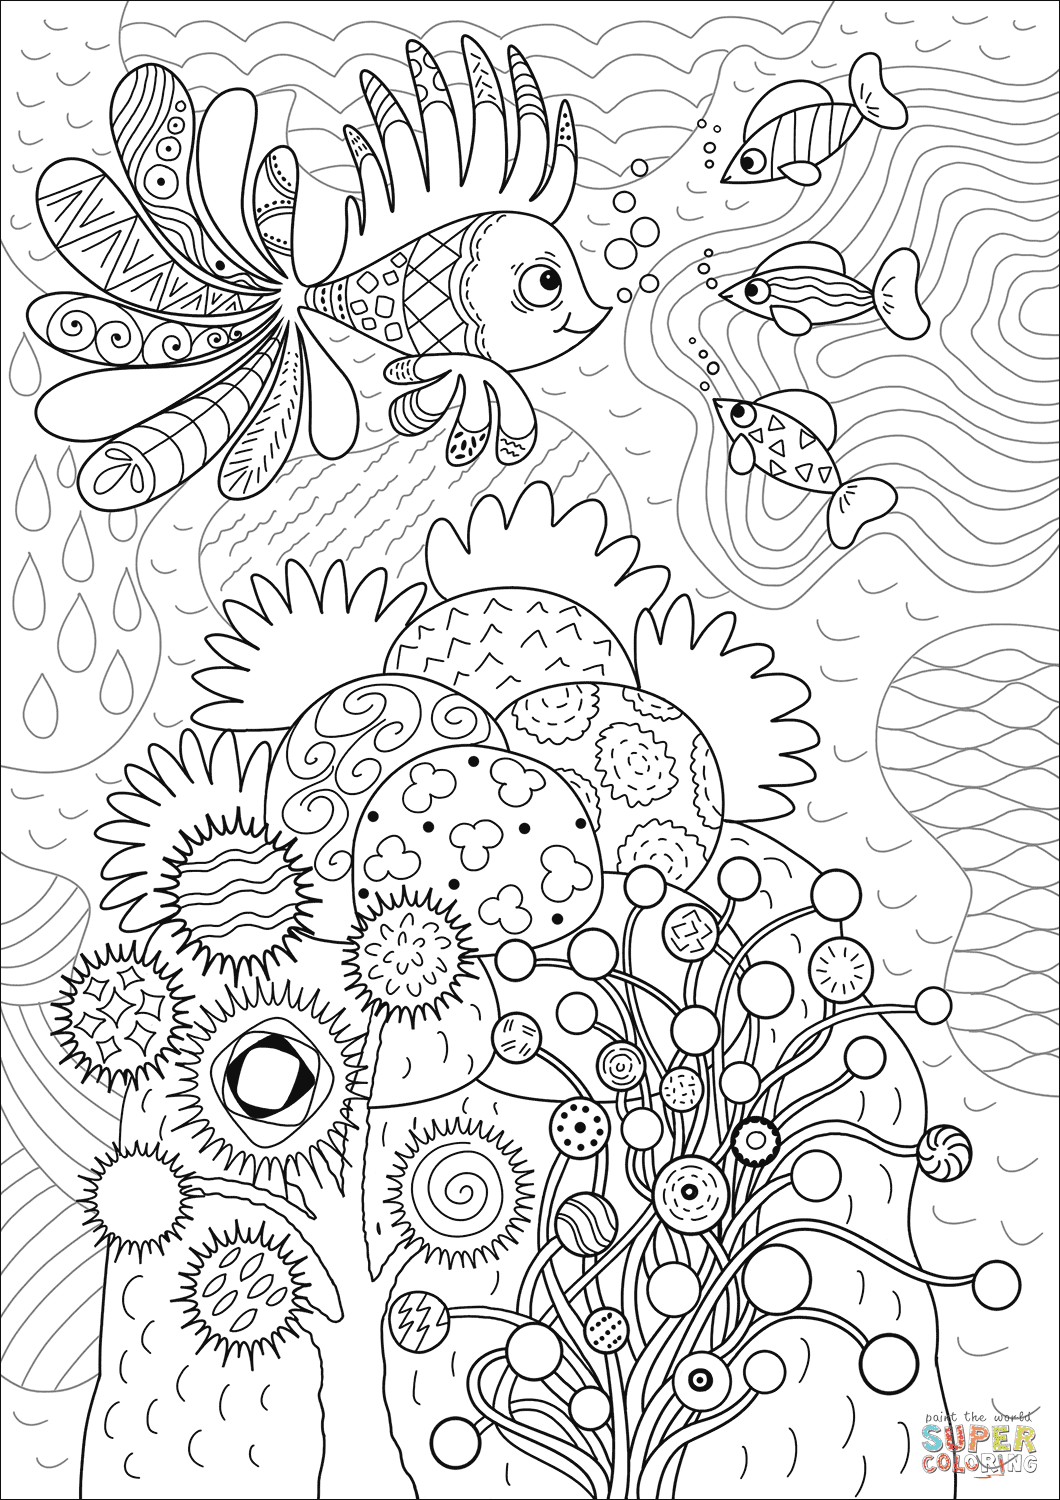 Lionfish in Coral Reef coloring page | Free Printable ...